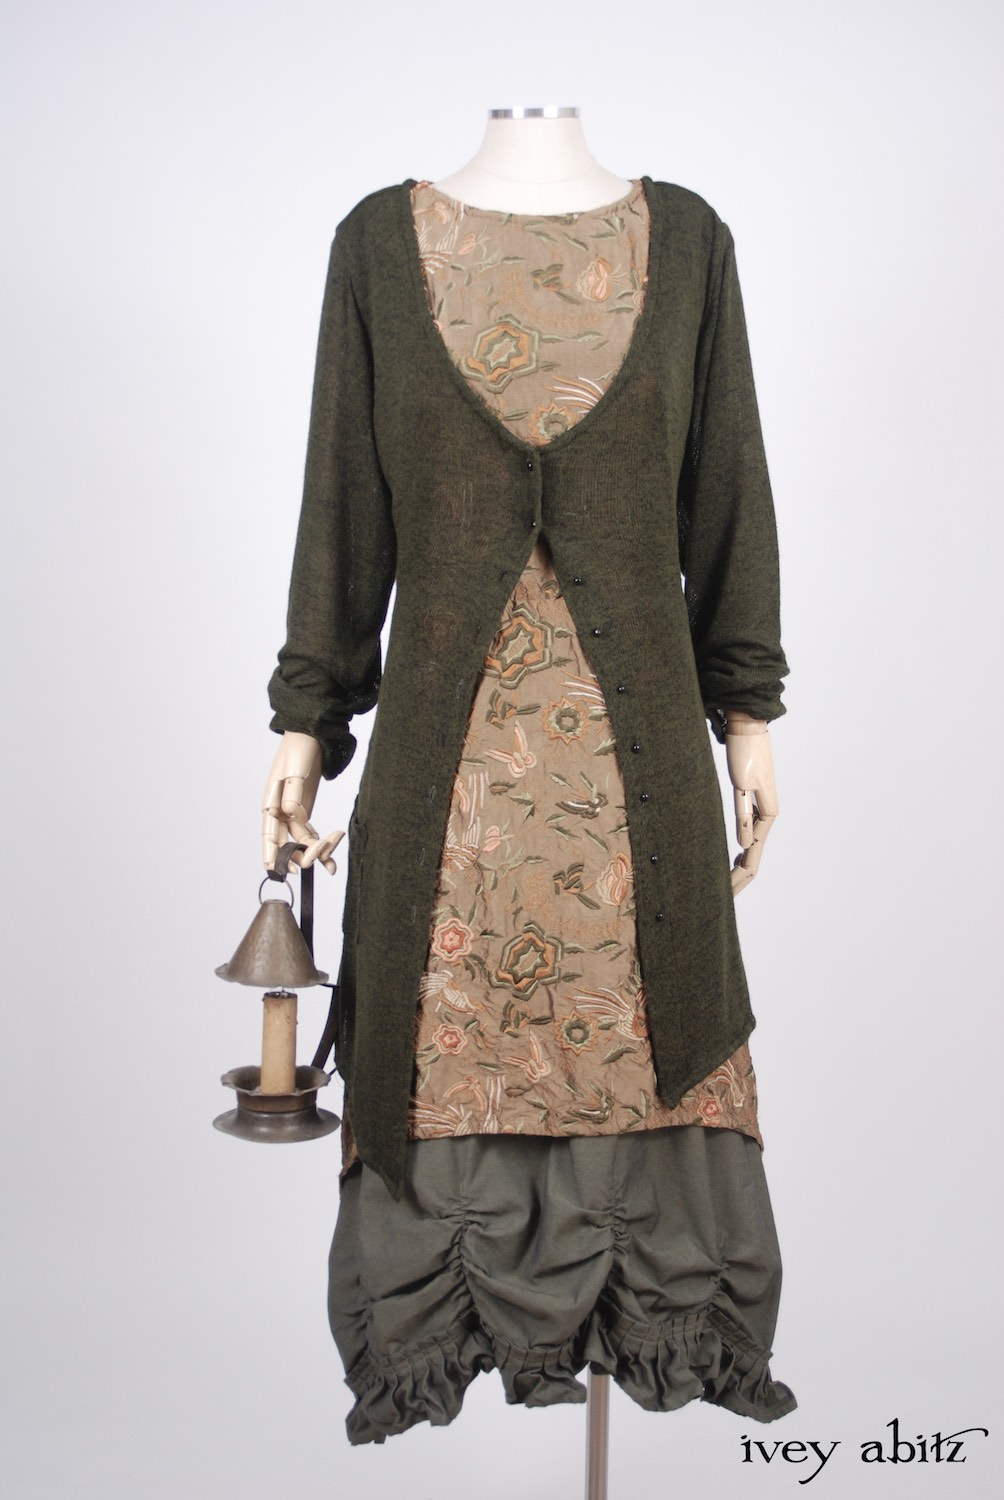 Ivey Abitz - Fairholme Jacket in Morning Meadow/Blackbird Softest Knit - Dennison Frock in Birdsong Embroidered Silk   - Edenshire Frock in Morning Meadow Yarn Dyed Cotton, Low Water